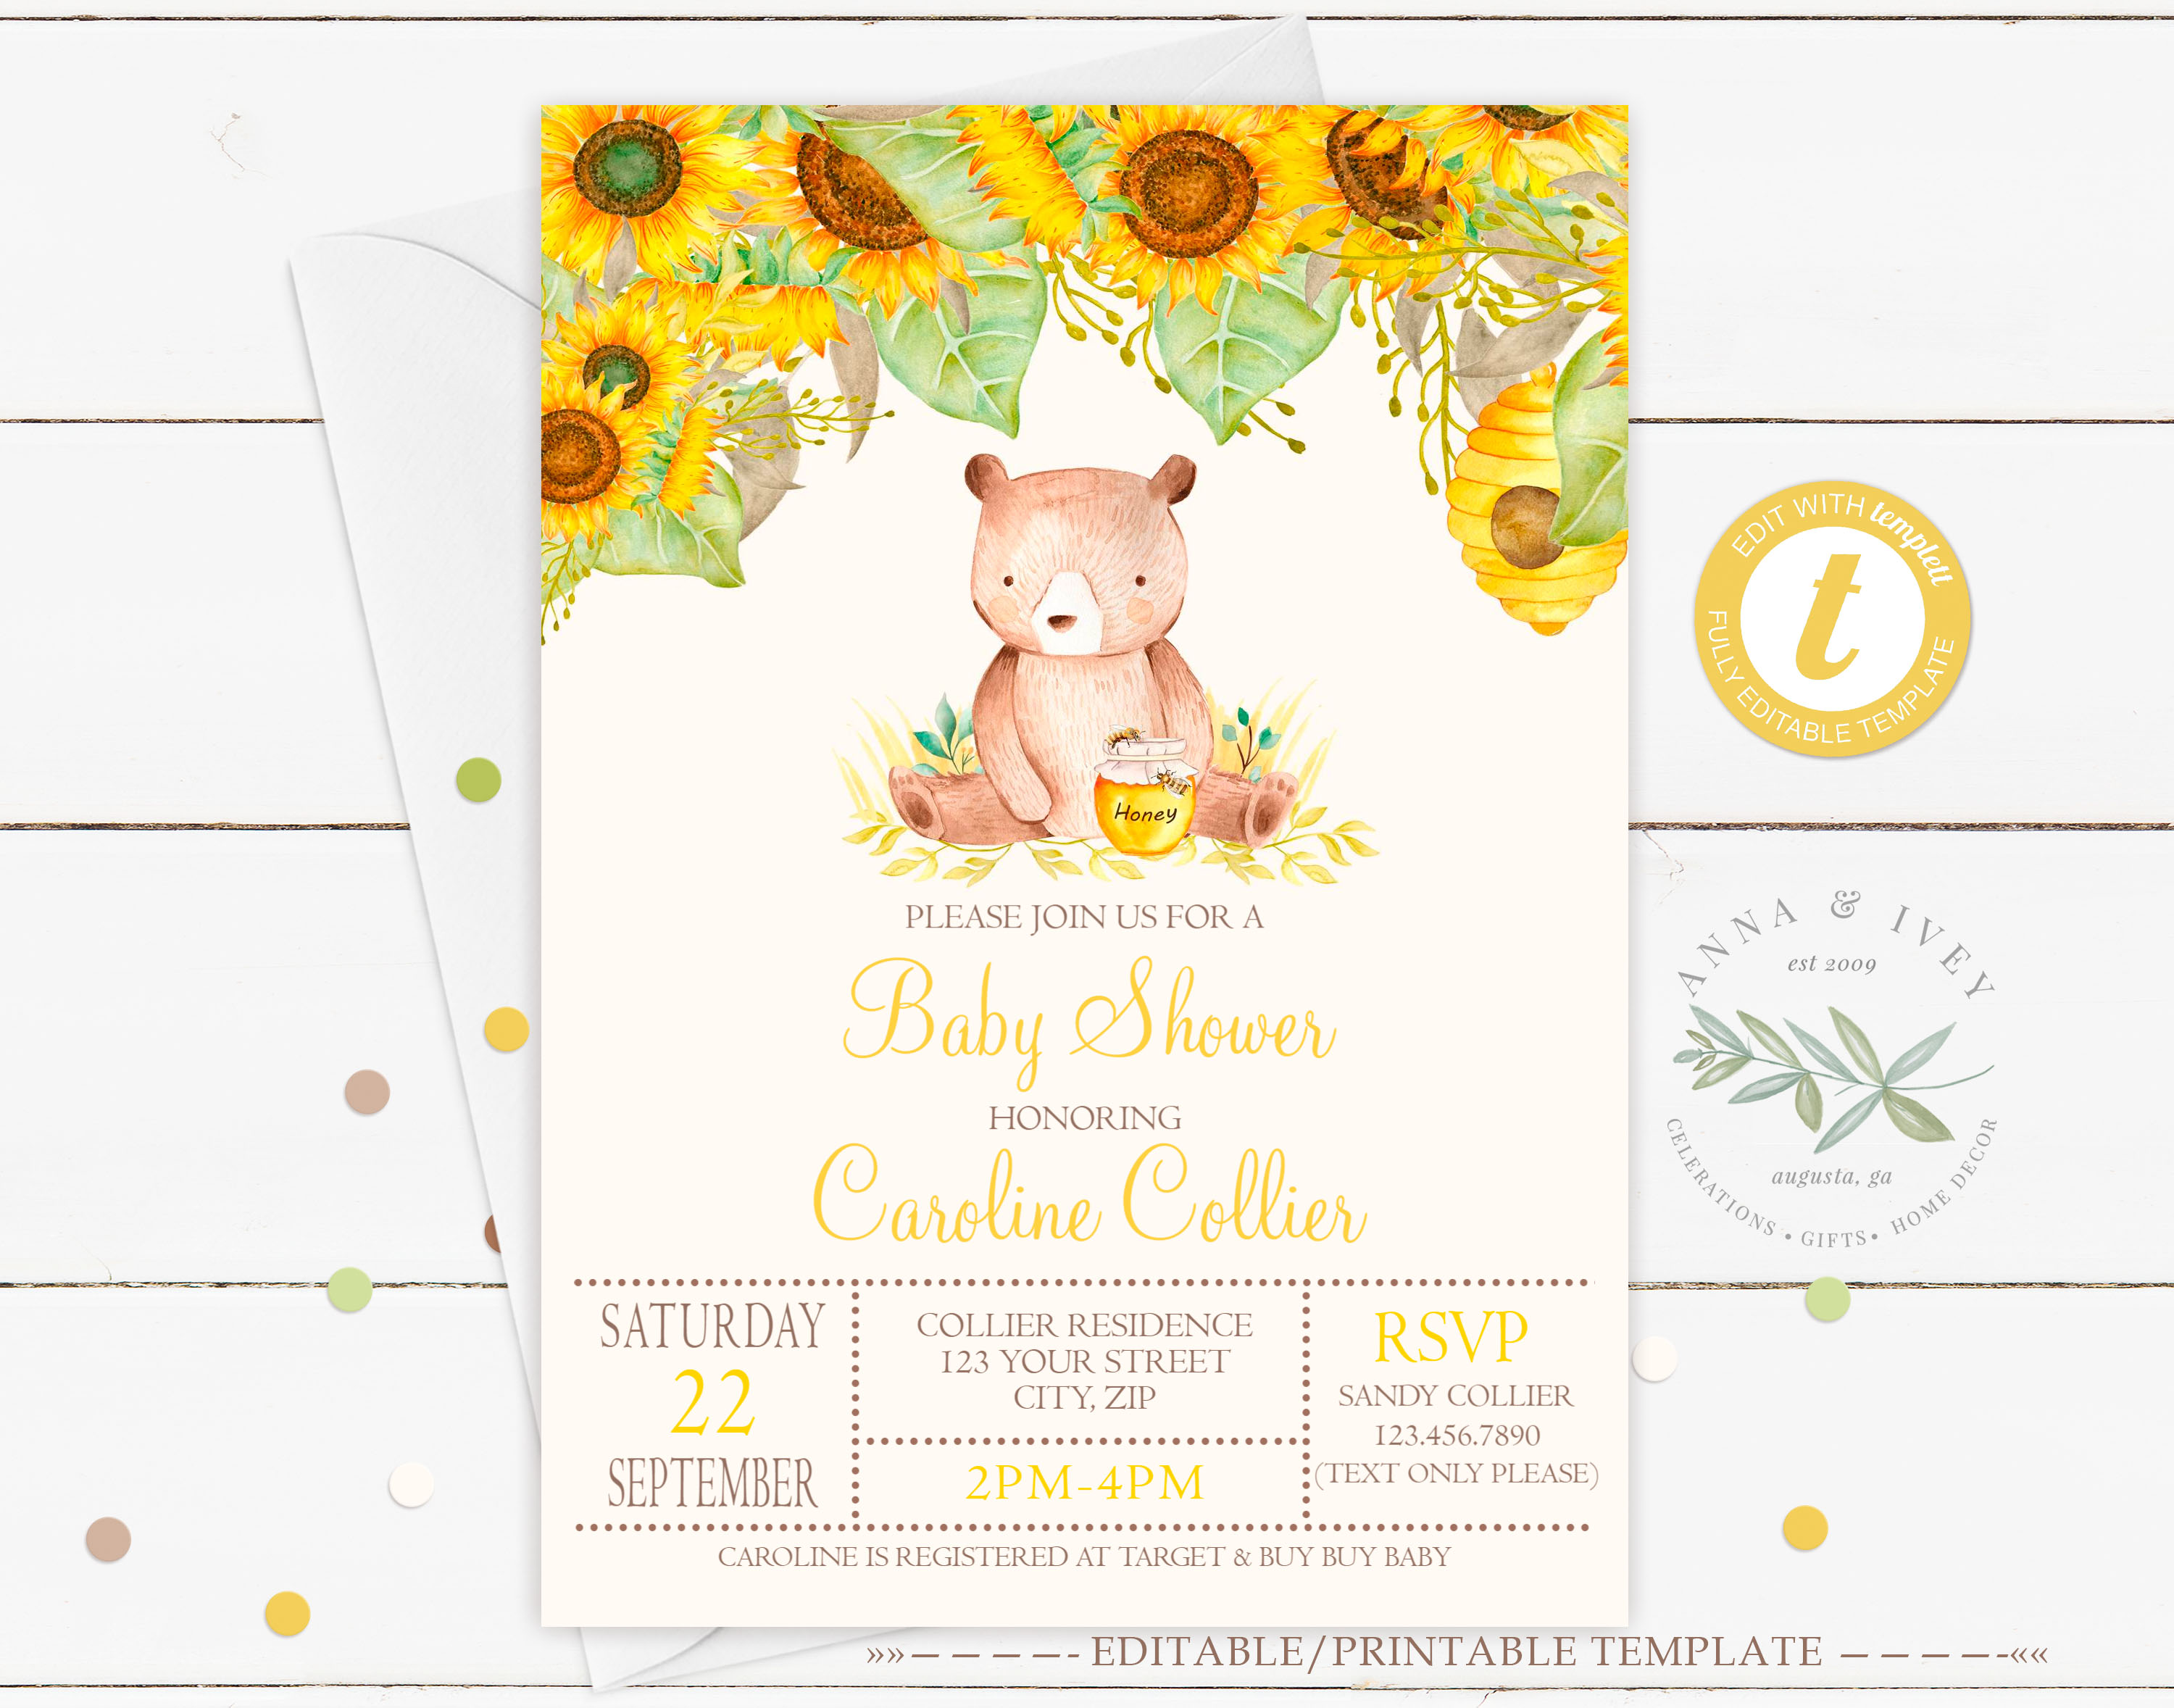 photograph about Printable Pictures of Sunflowers titled Printable Honey Endure with Sunflowers Invitation